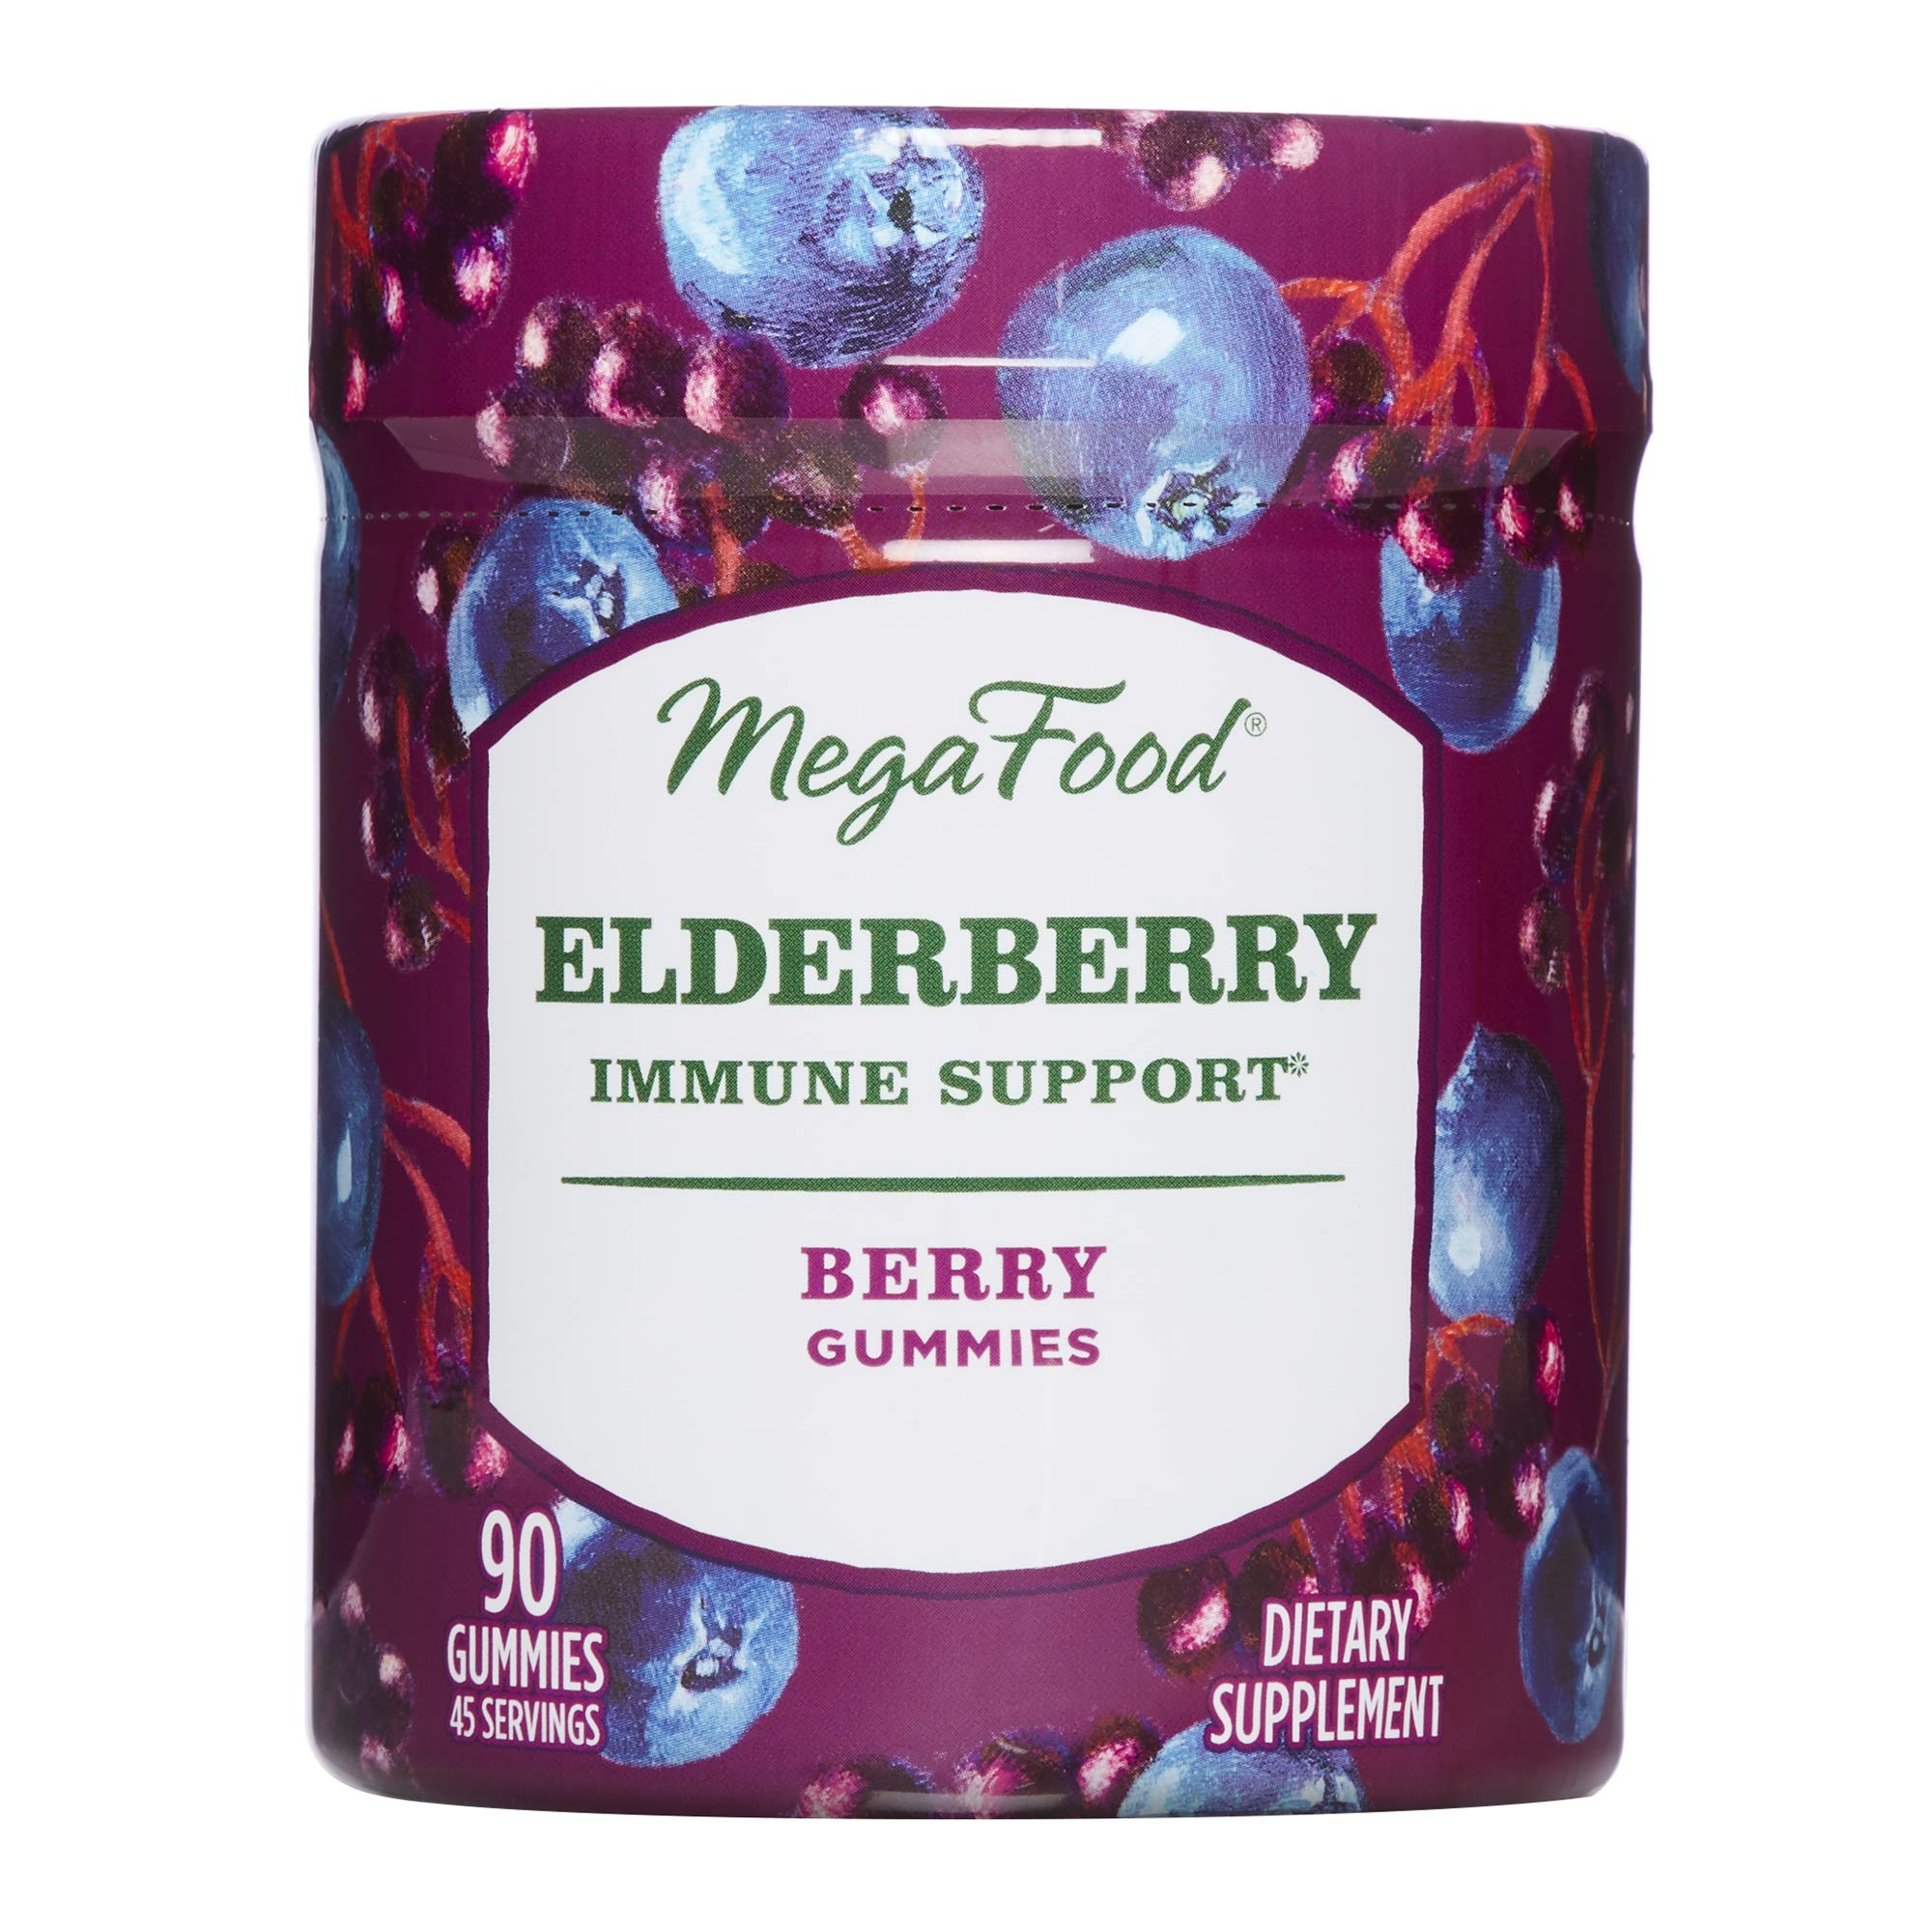 MegaFood, Elderberry Immune Support Gummies, Promotes Immune Defenses, with Zinc and Organic Elderberry, Vegan and USDA Organic, 90 Gummies (45 Servings)